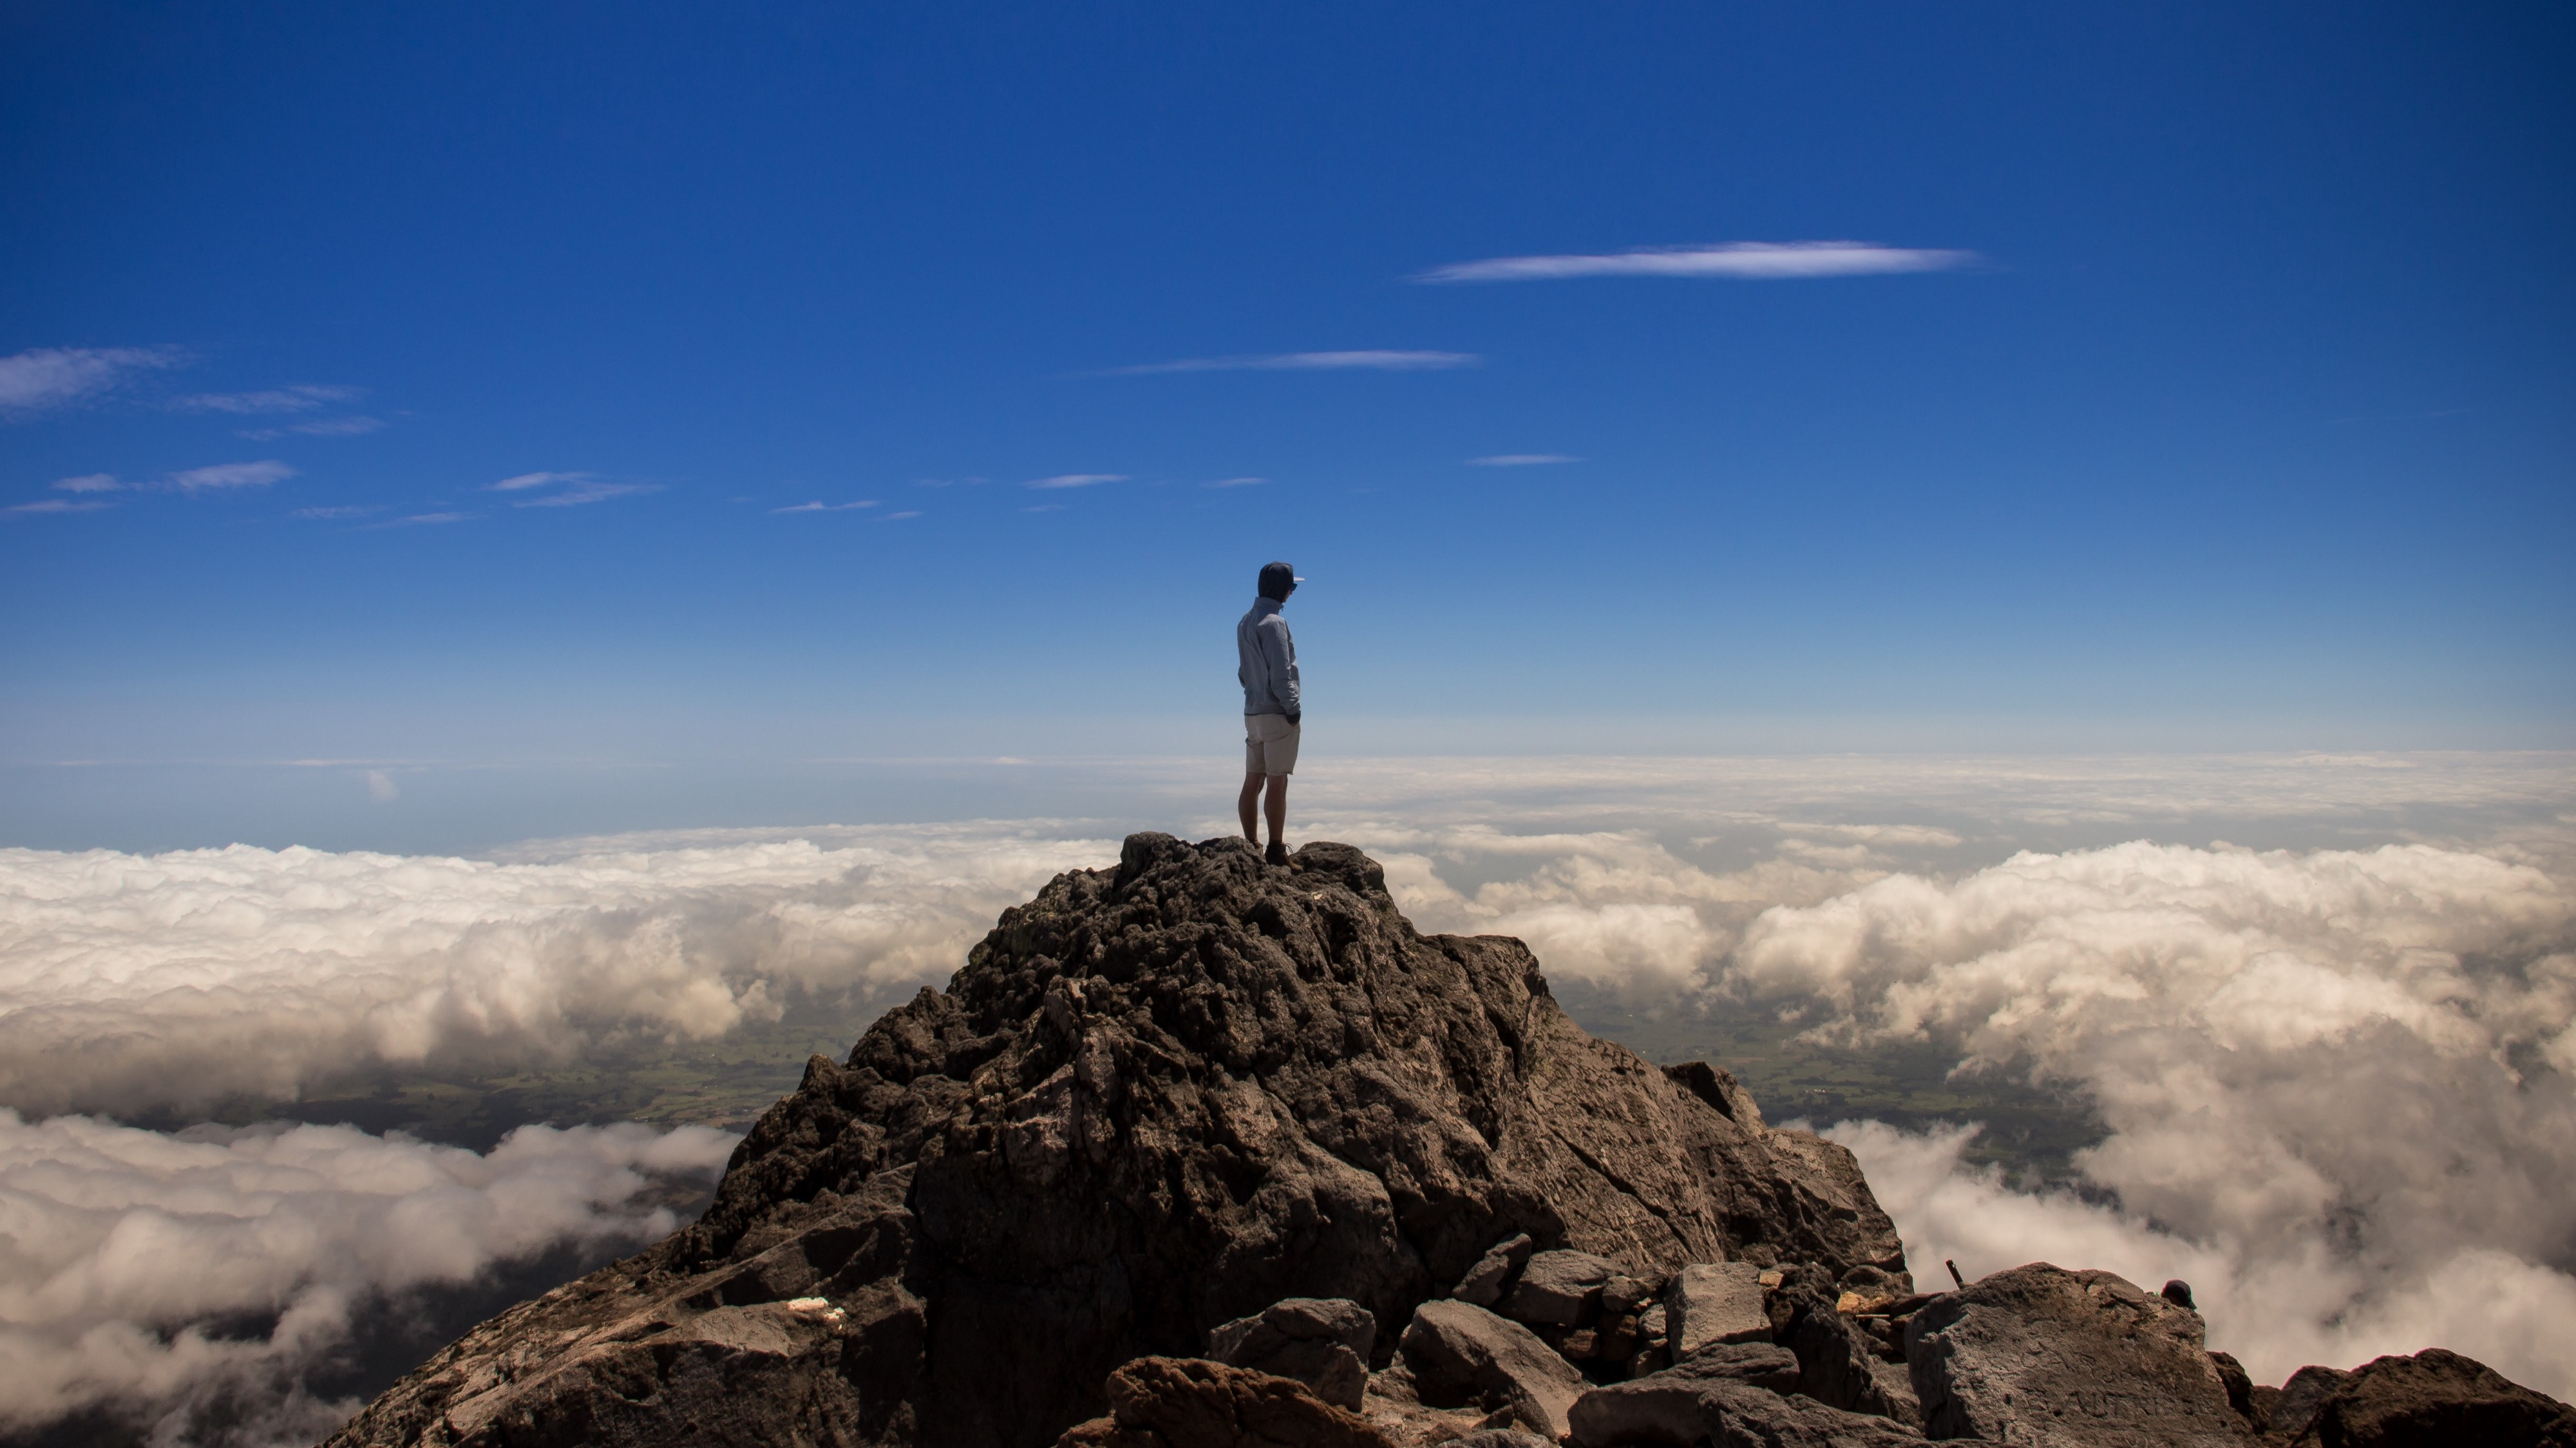 Man standing on mountaintop looking out over the clouds.